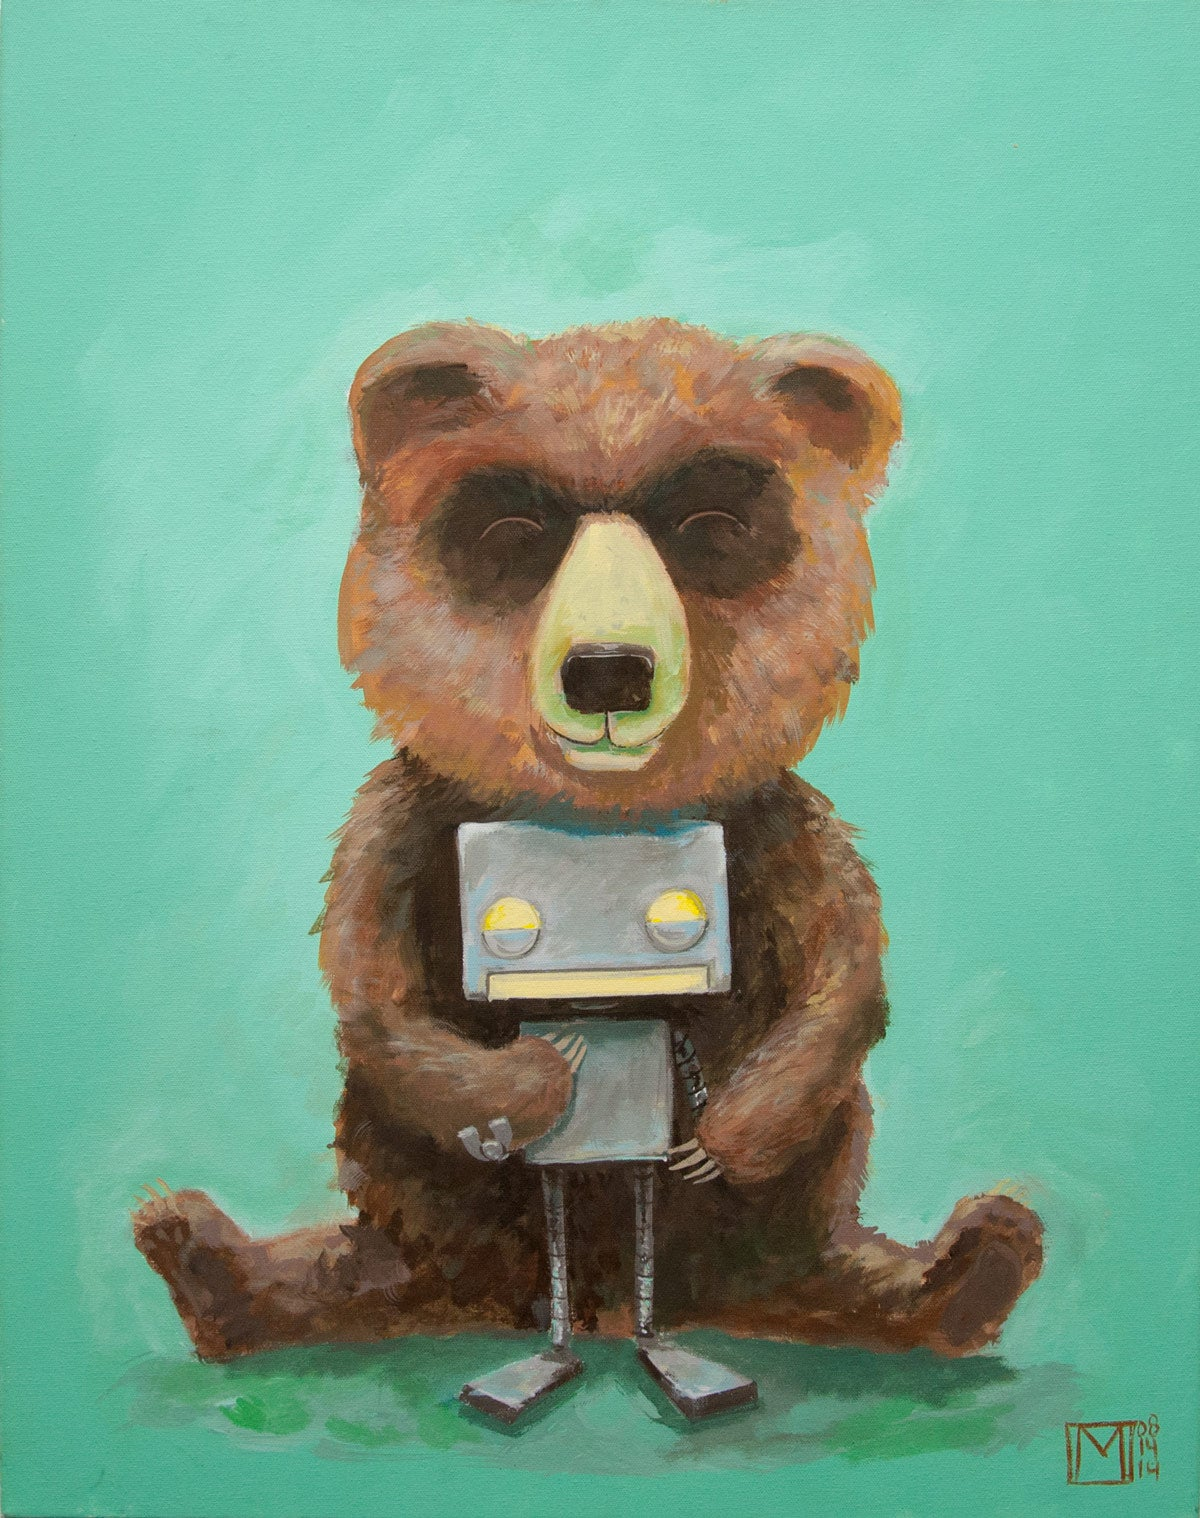 Image of The Bear and Robot II